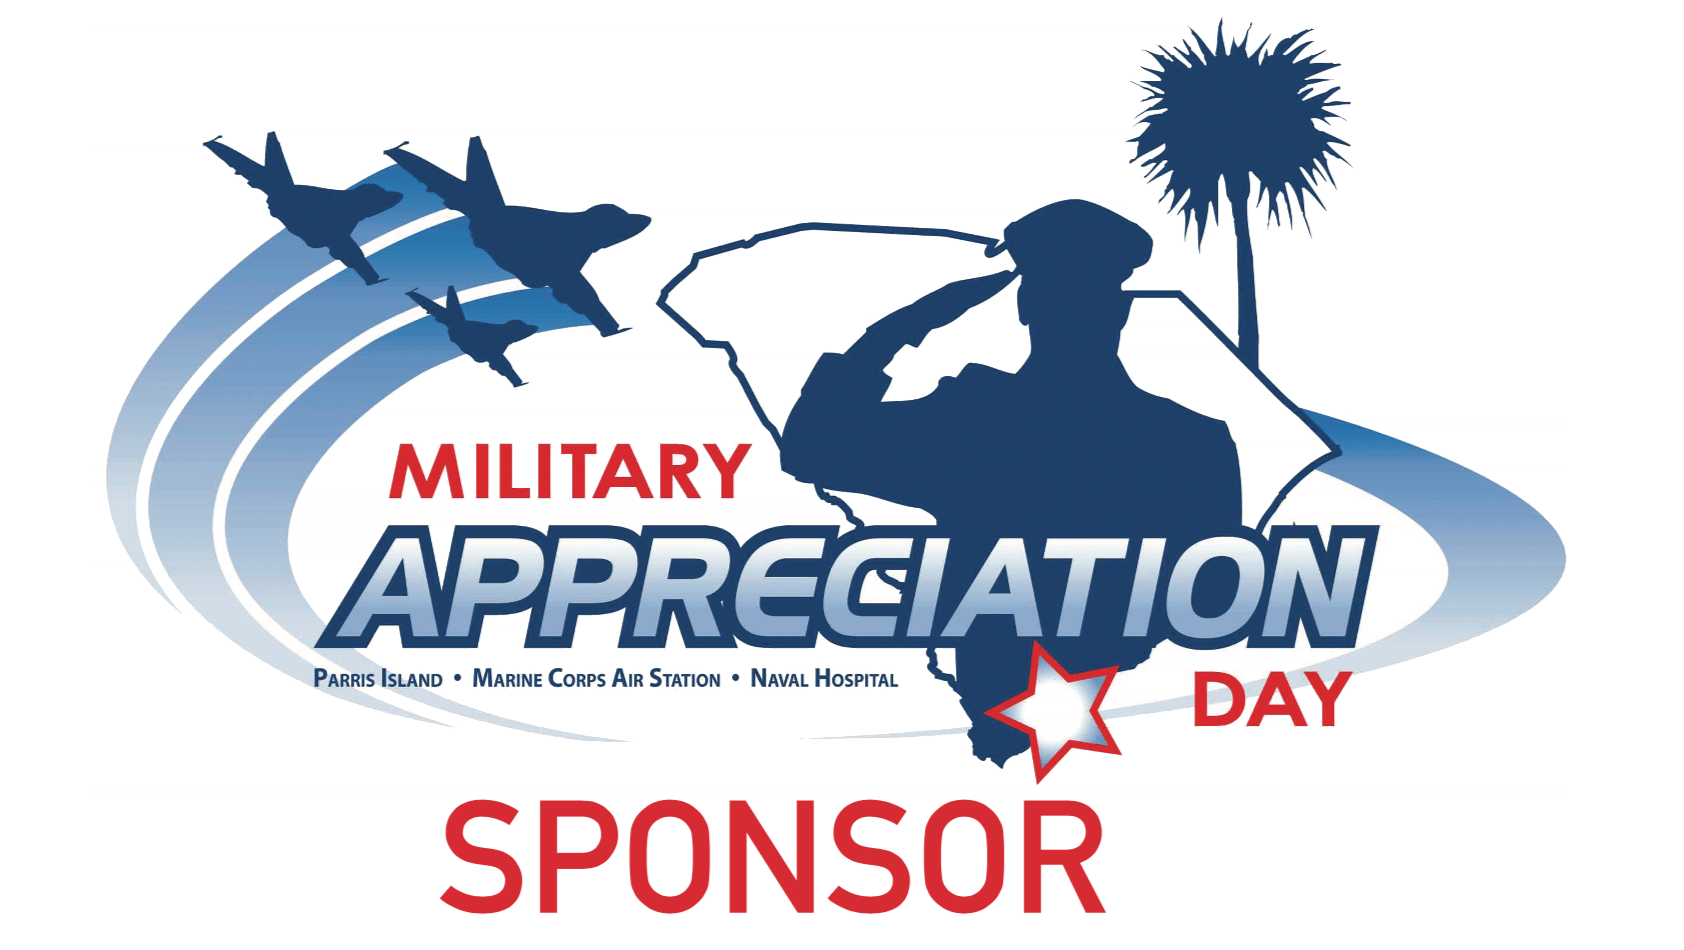 Military Appreciation Day Sponsor badge